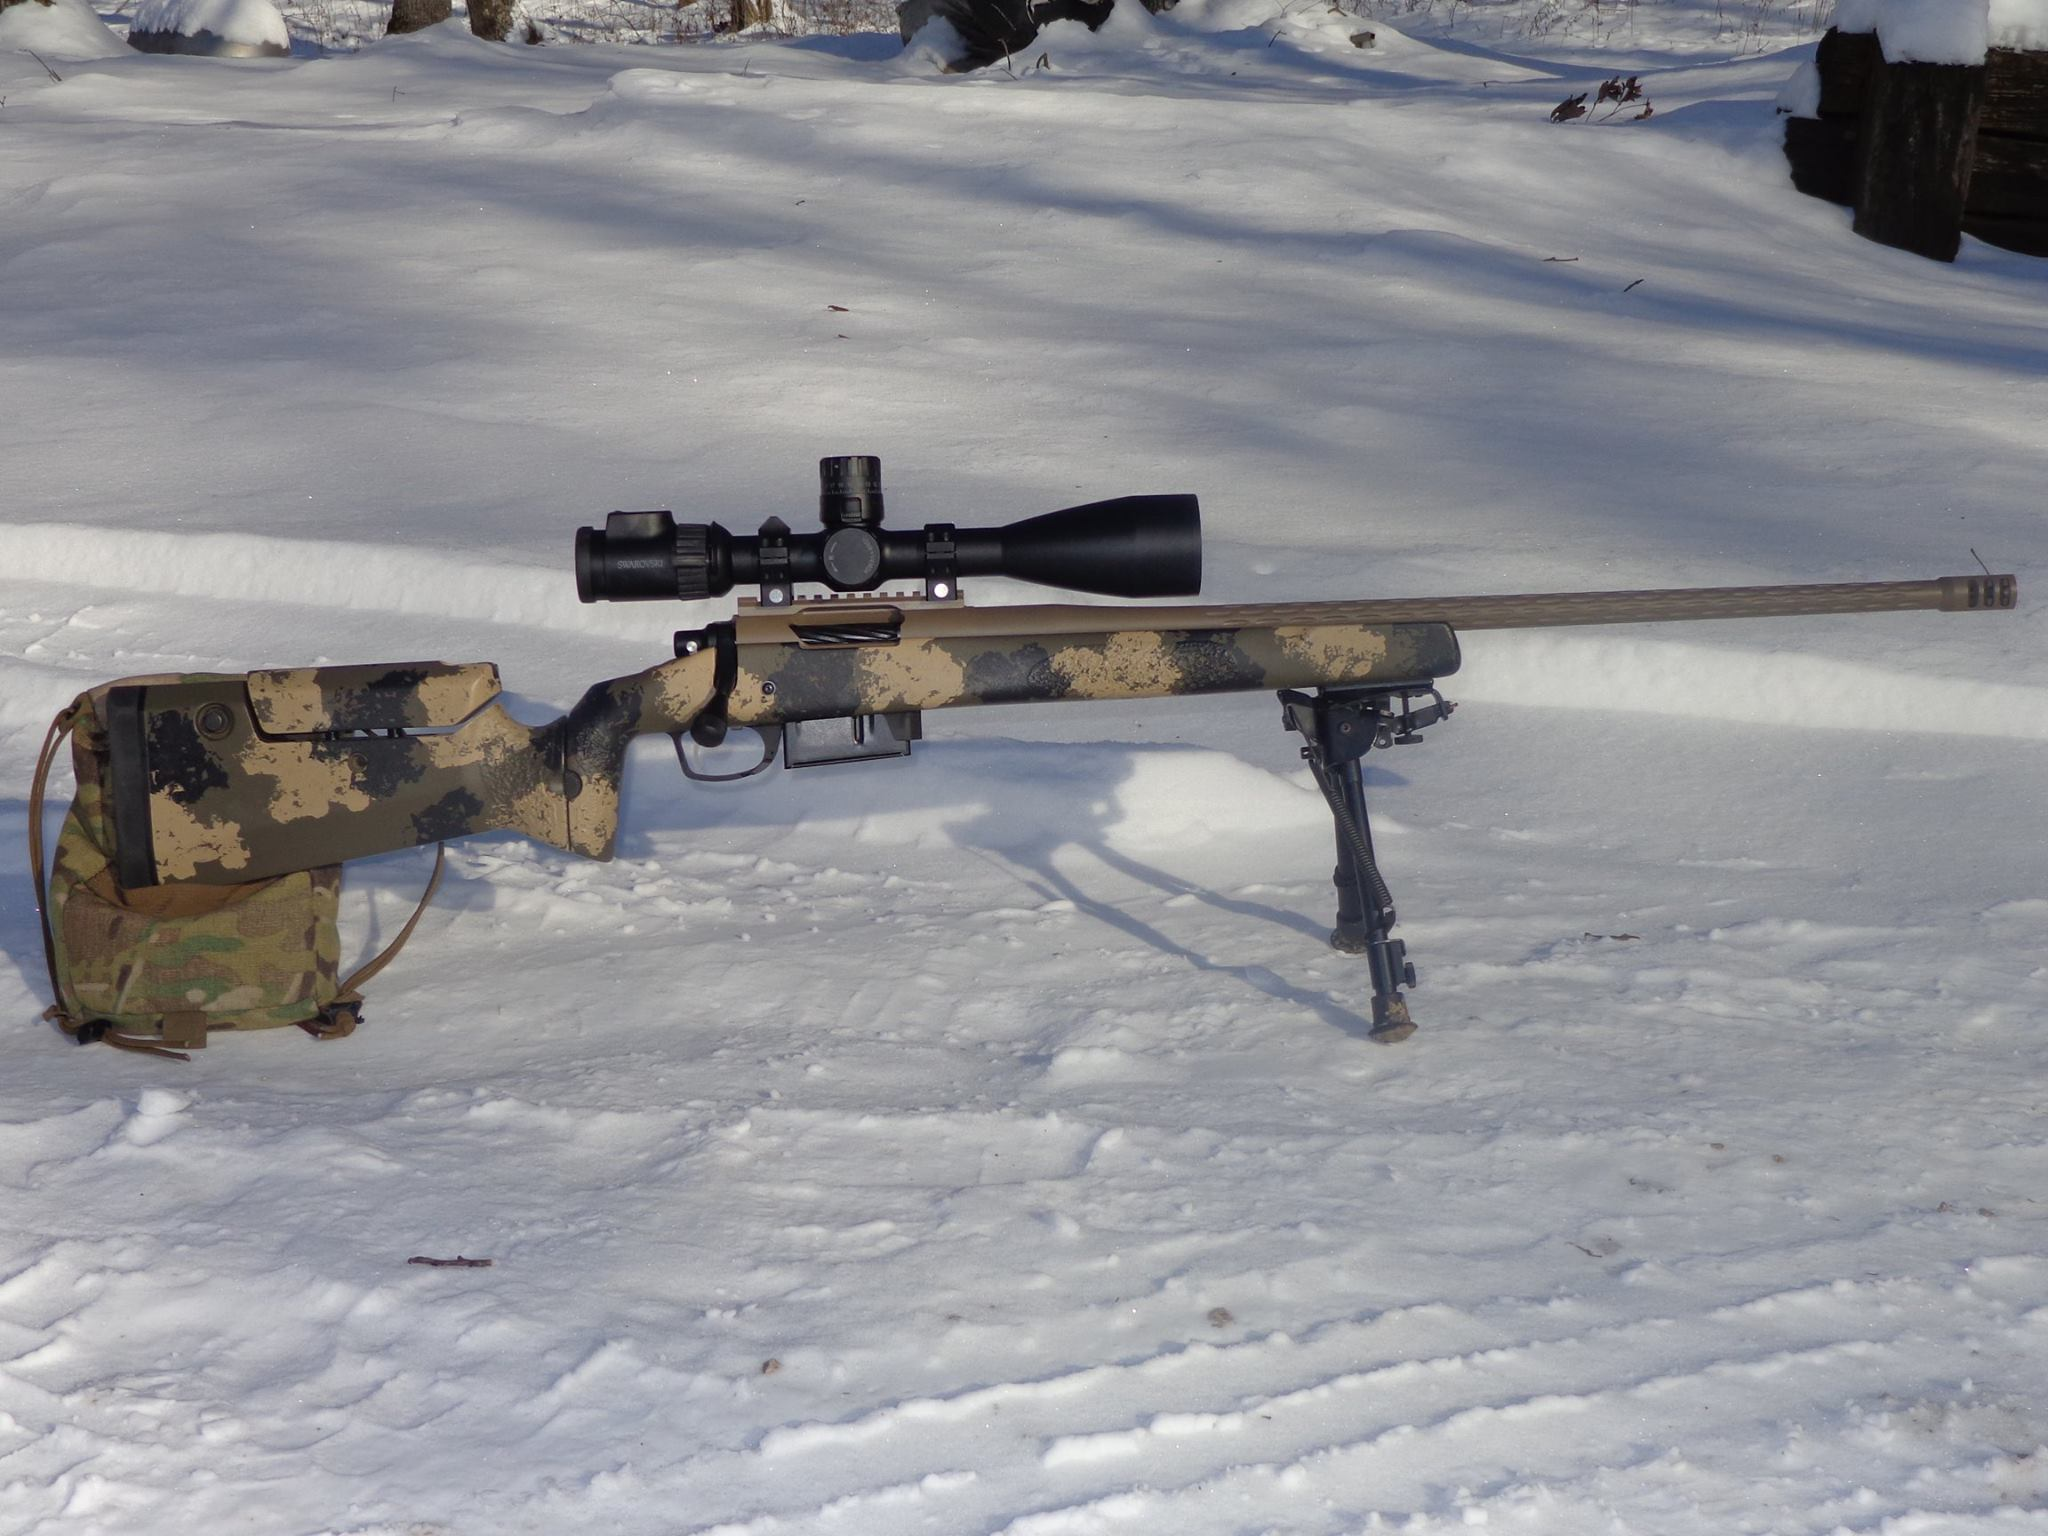 Building the most accurate rifles in the industry.